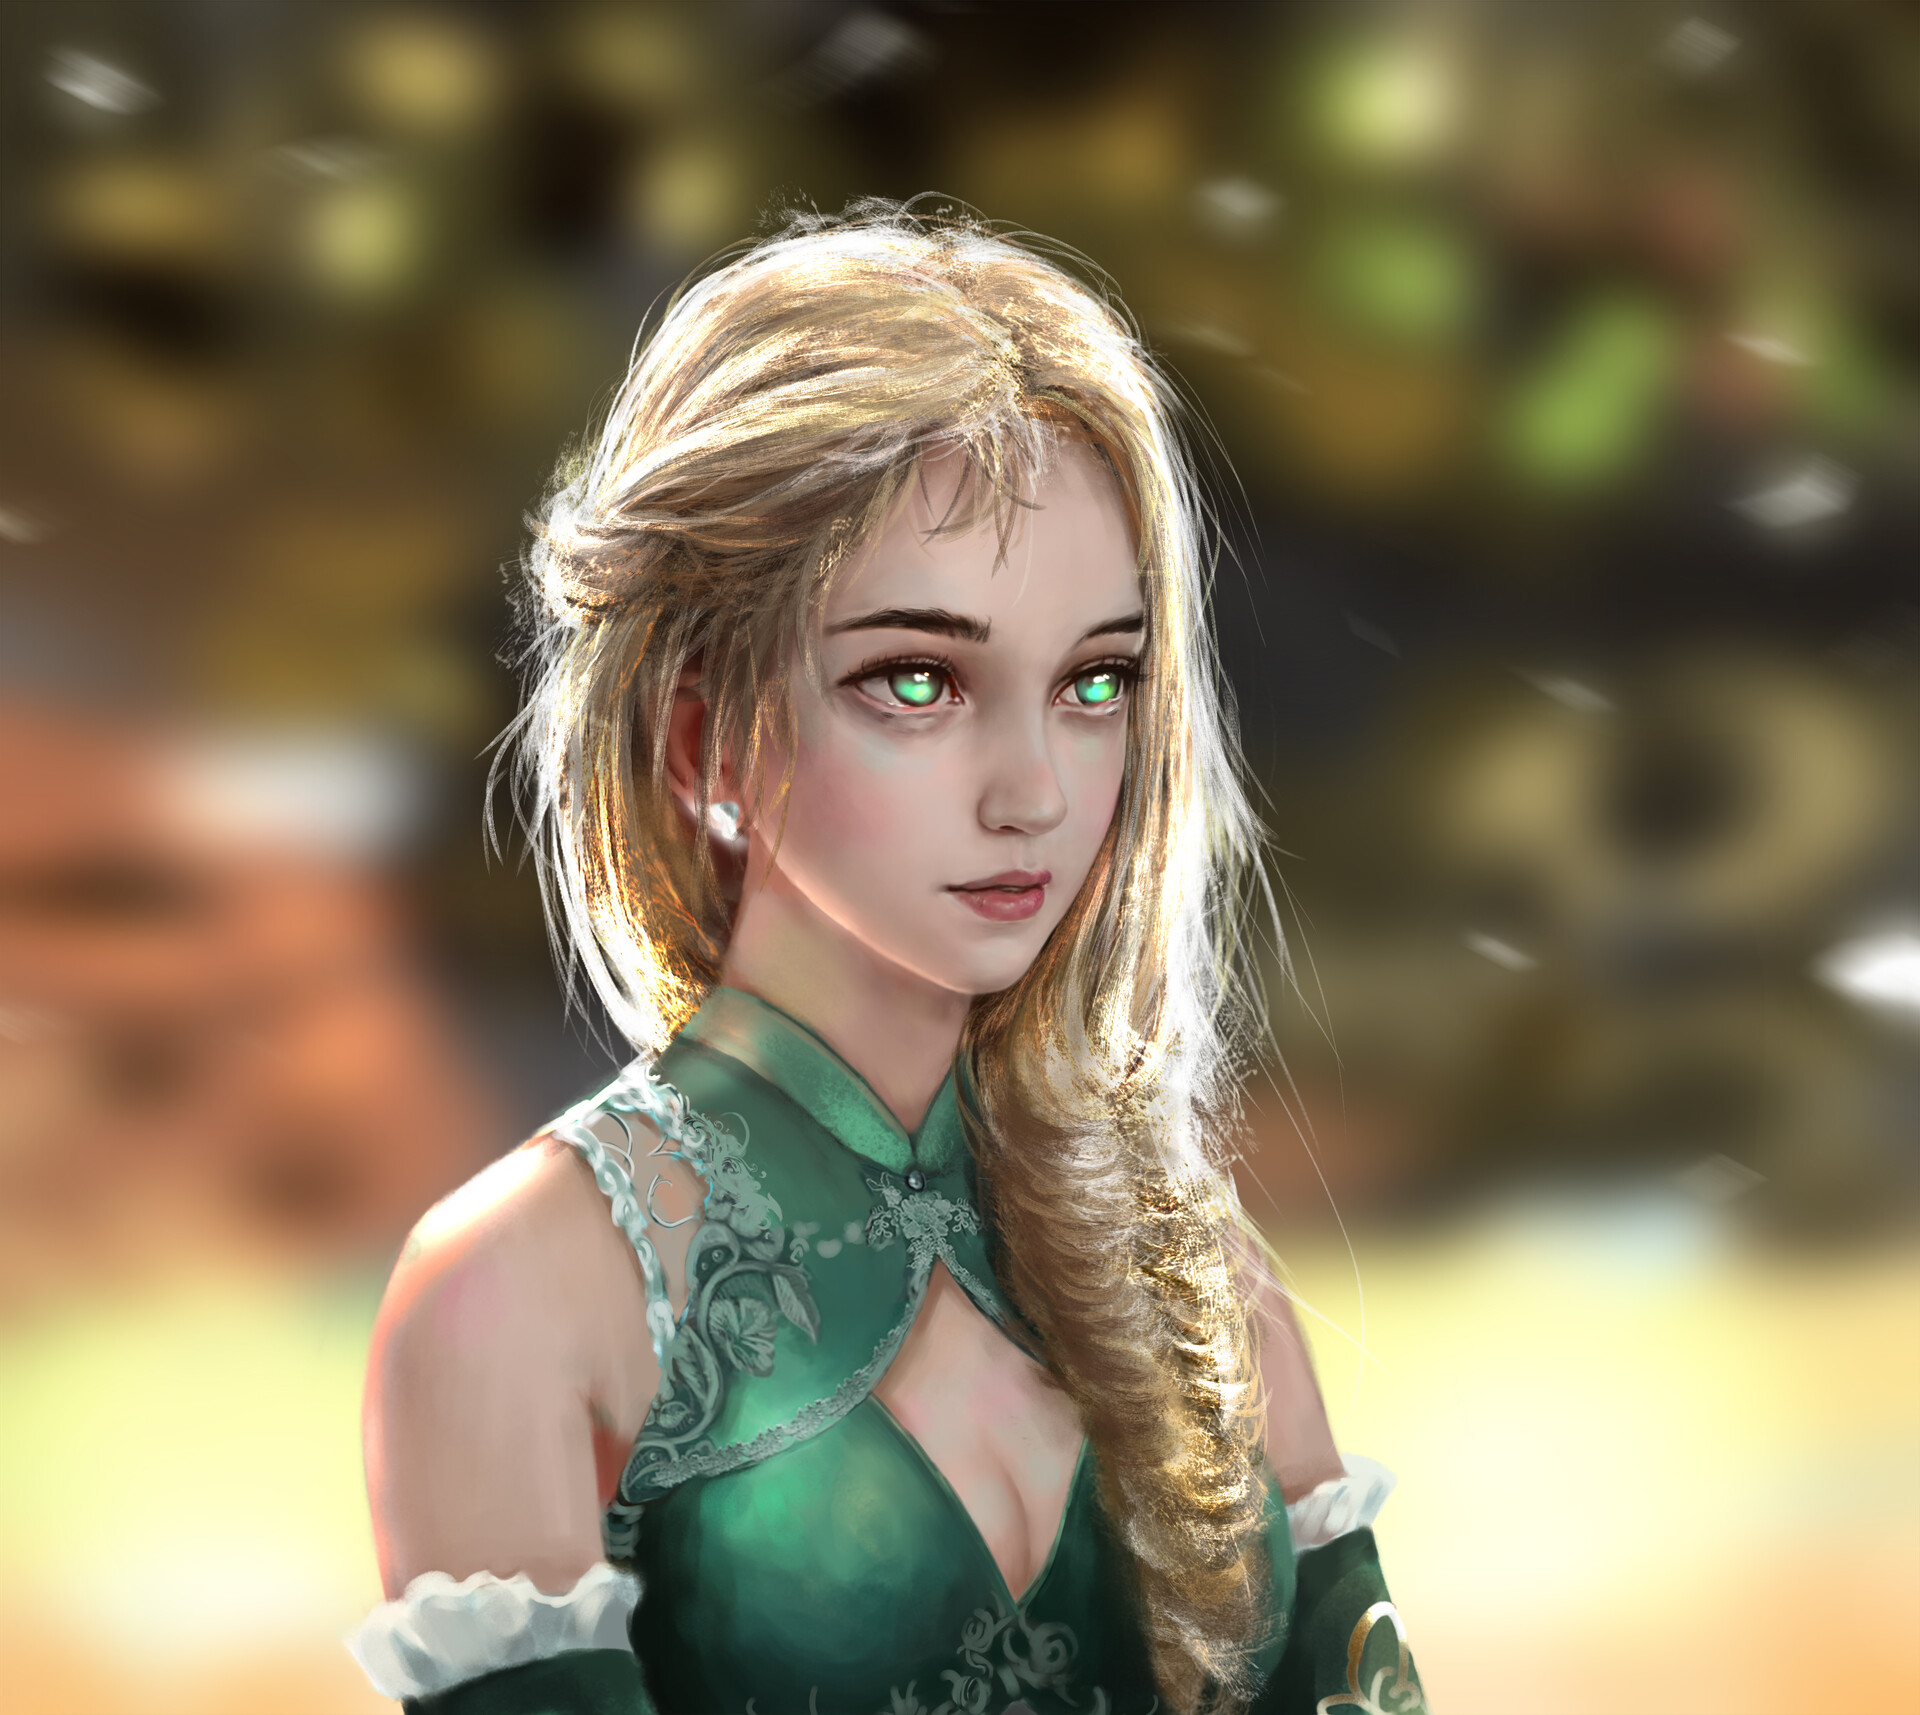 General 1920x1715 digital art fantasy art women blonde illustration green eyes